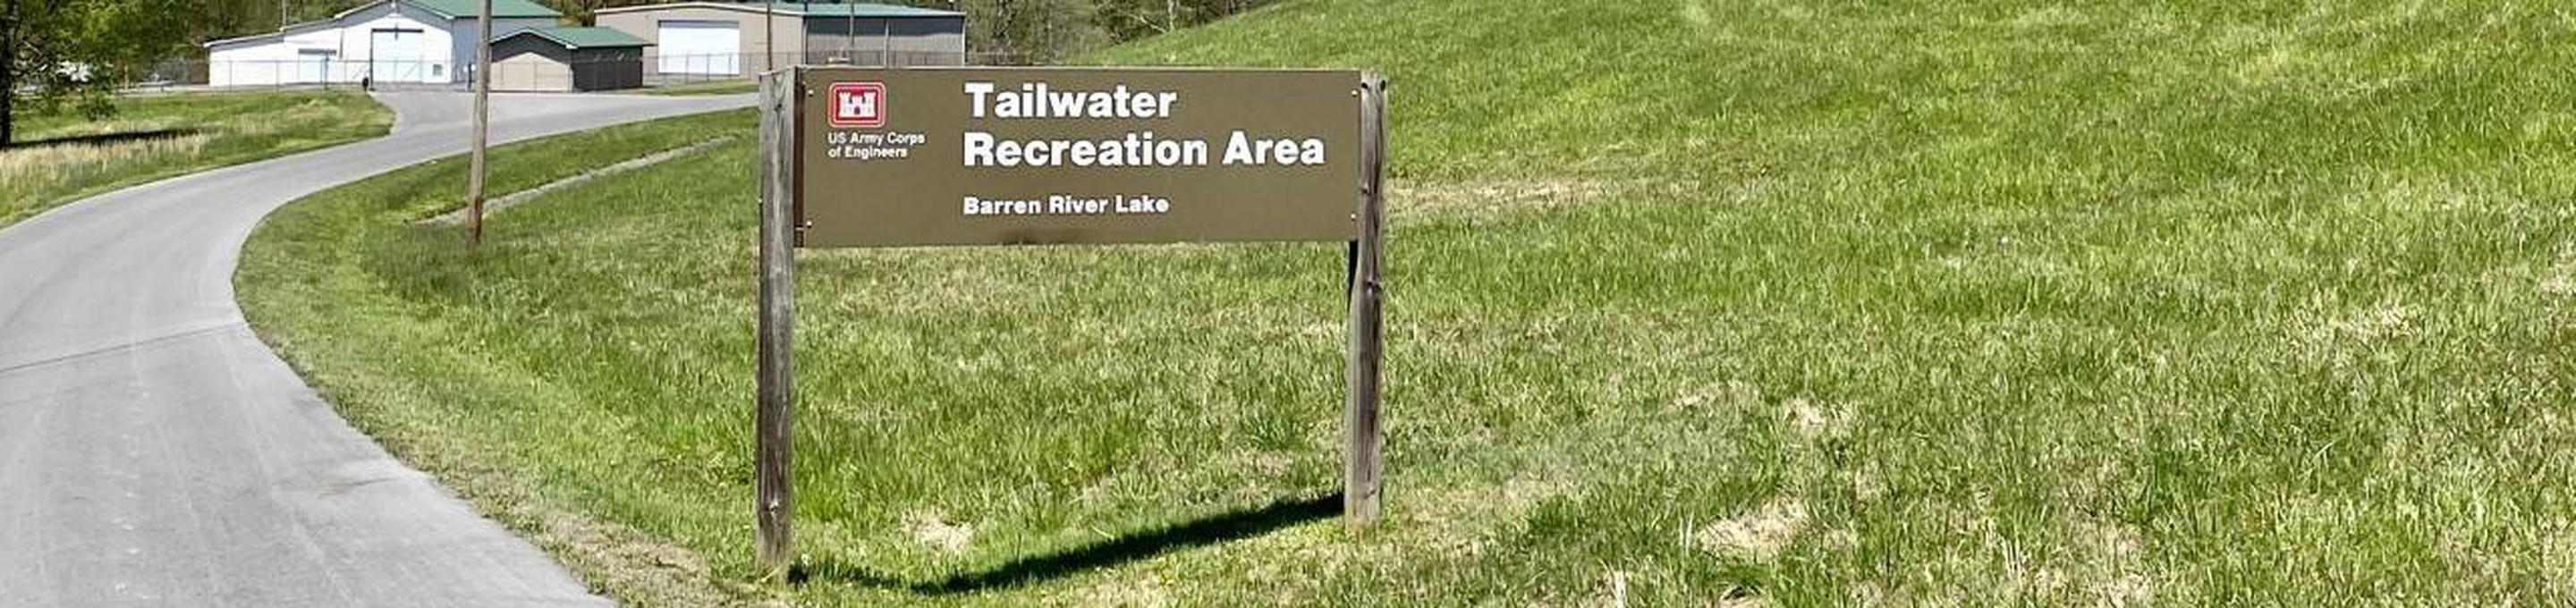 Tailwater Recreation AreaTailwater